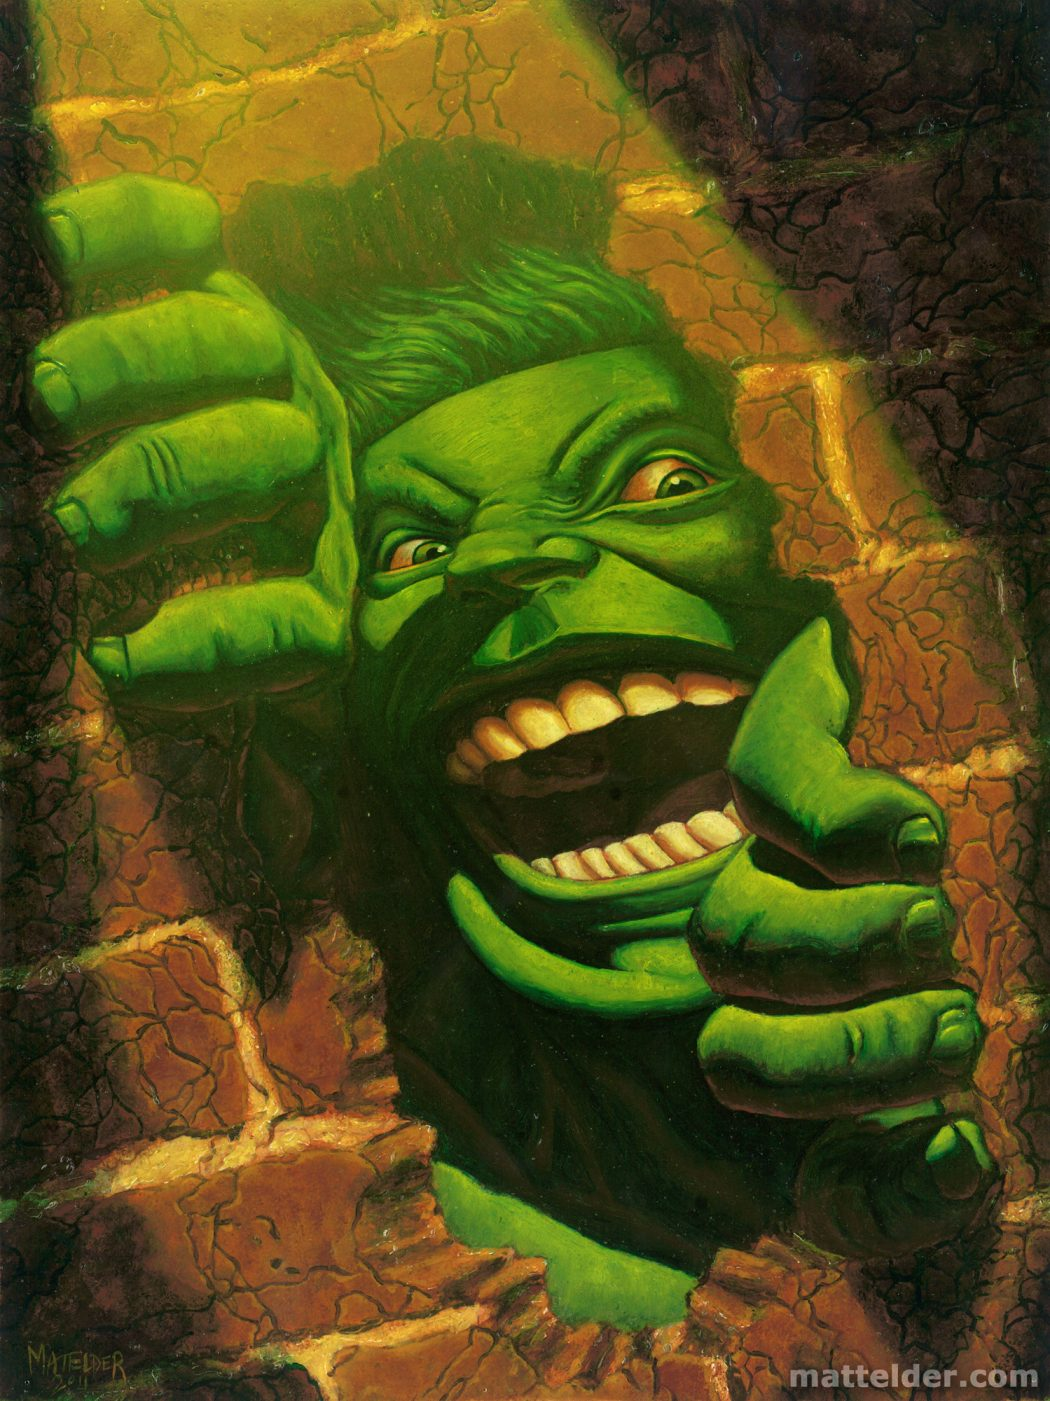 hulk_smash_brick_wall___oil_painting_by_mattelder- 25 Strangest Wall Paintings